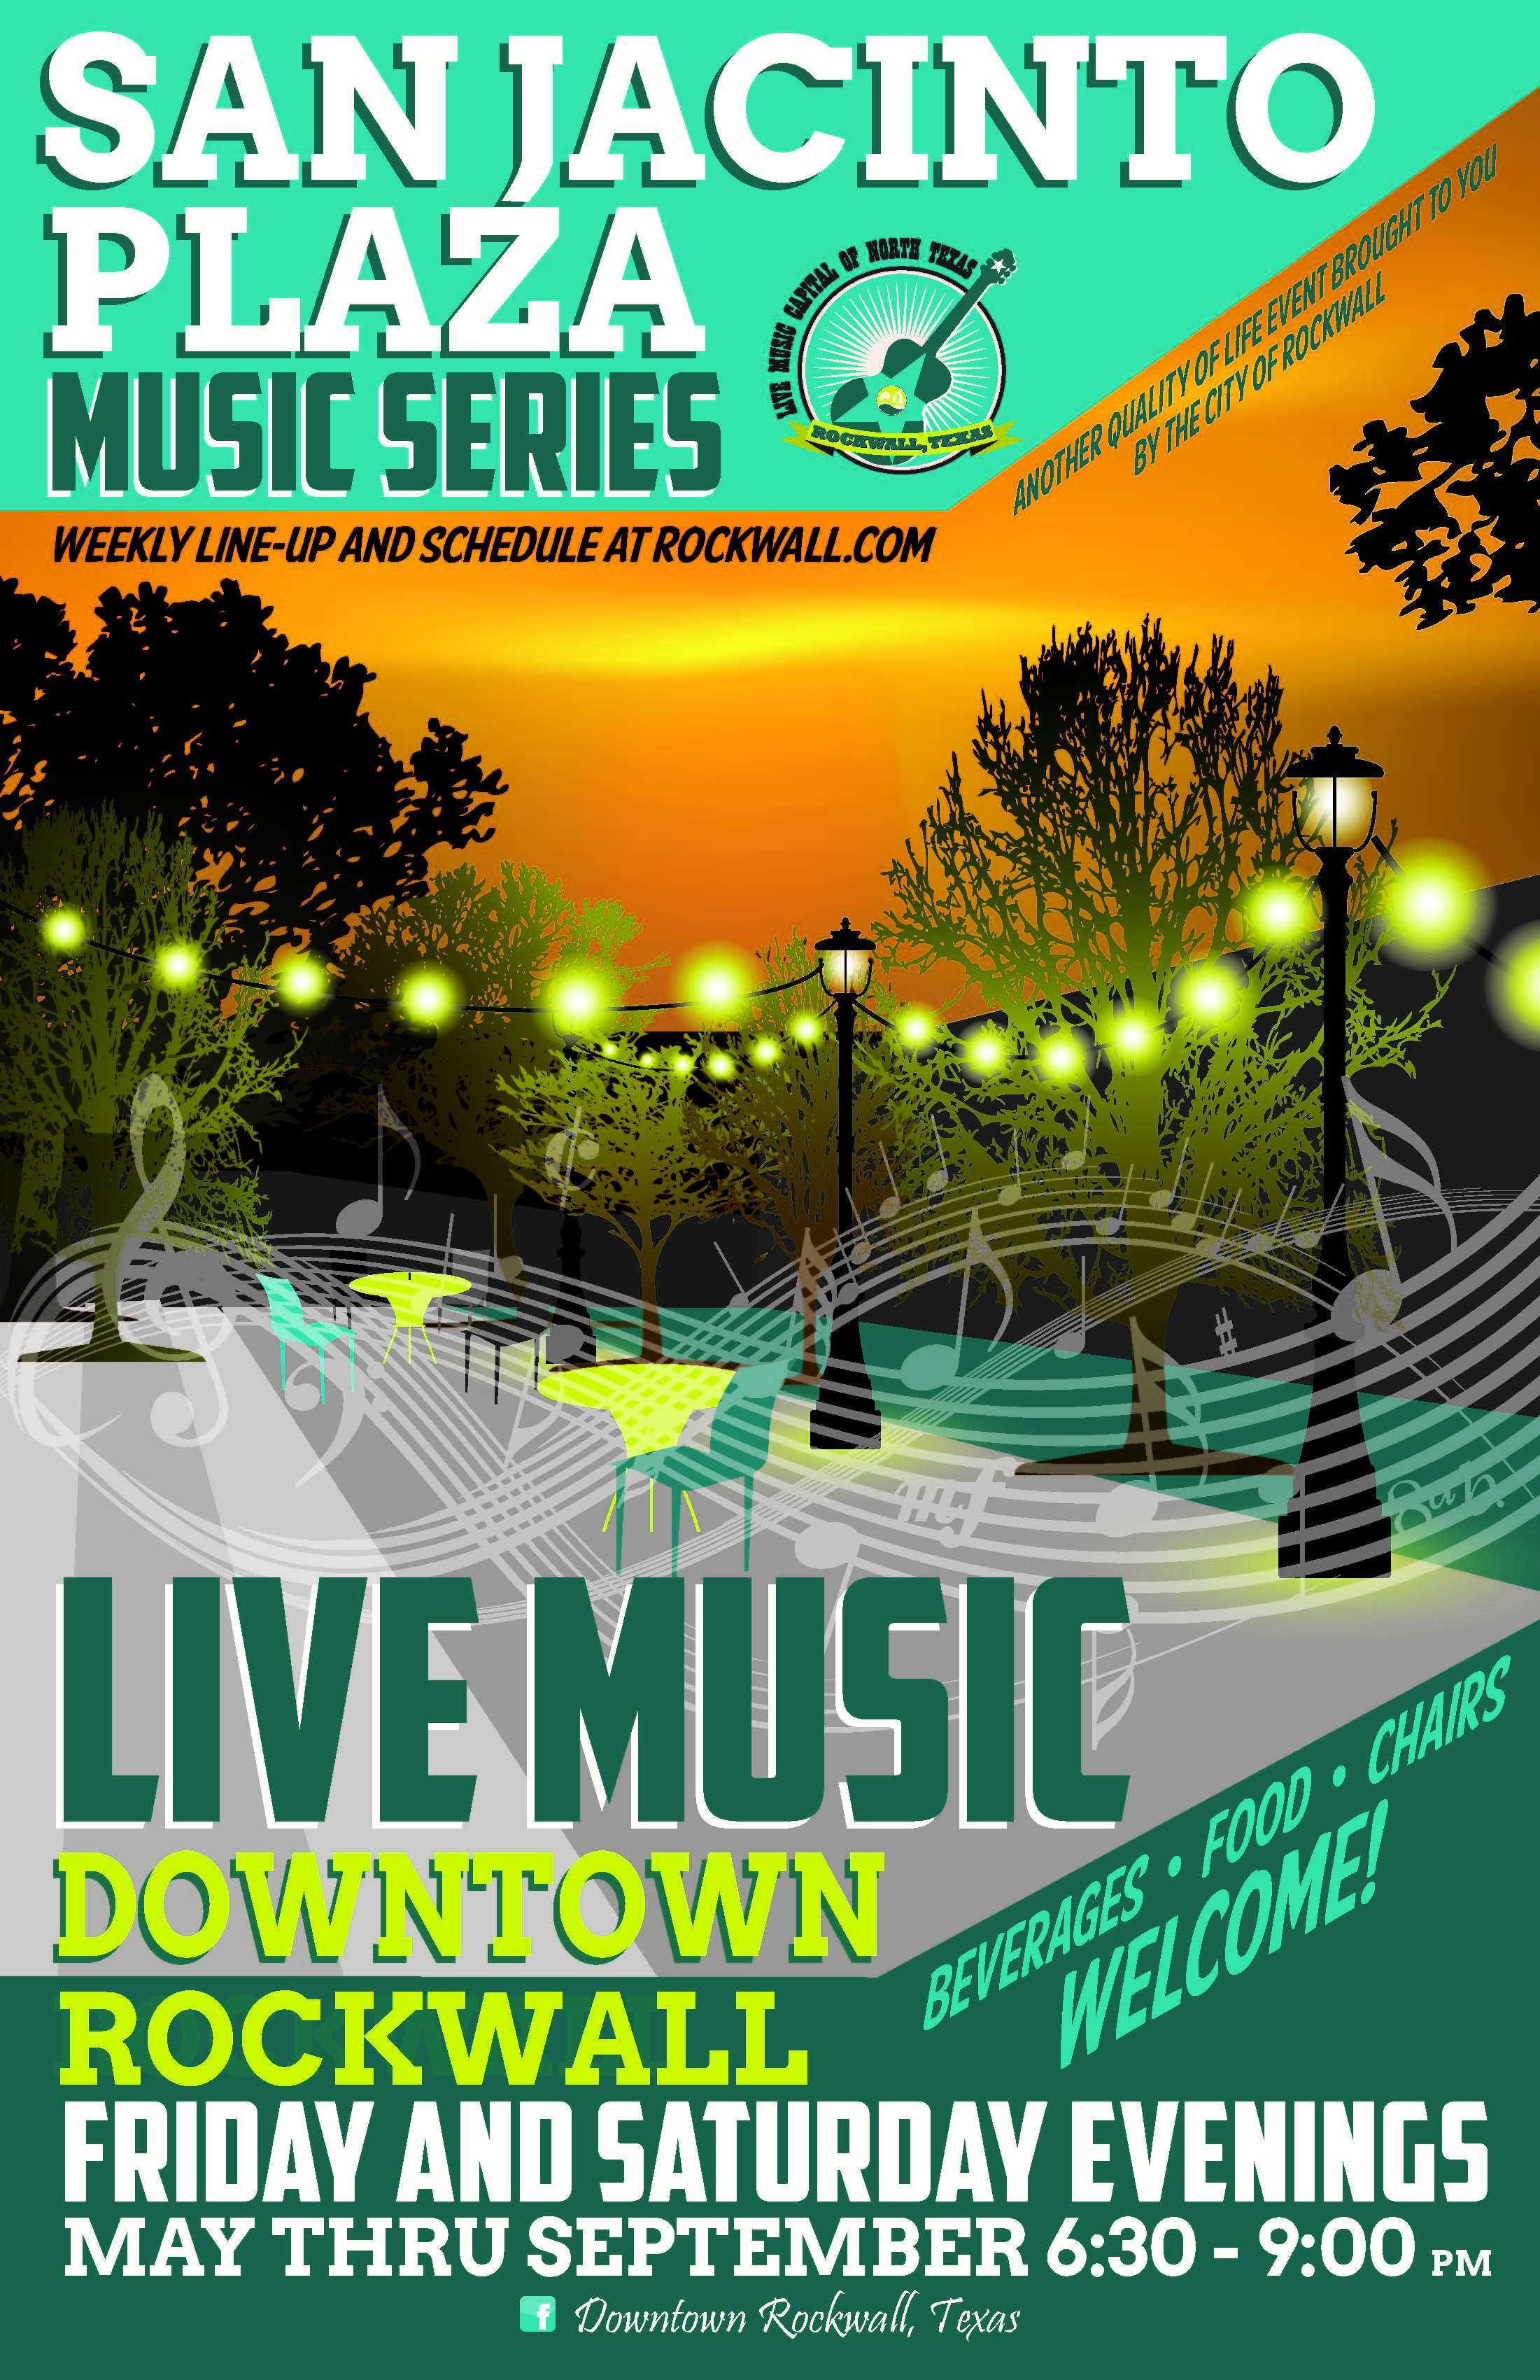 Introducing free outdoor summer music series at Rockwall's San Jacinto Plaza